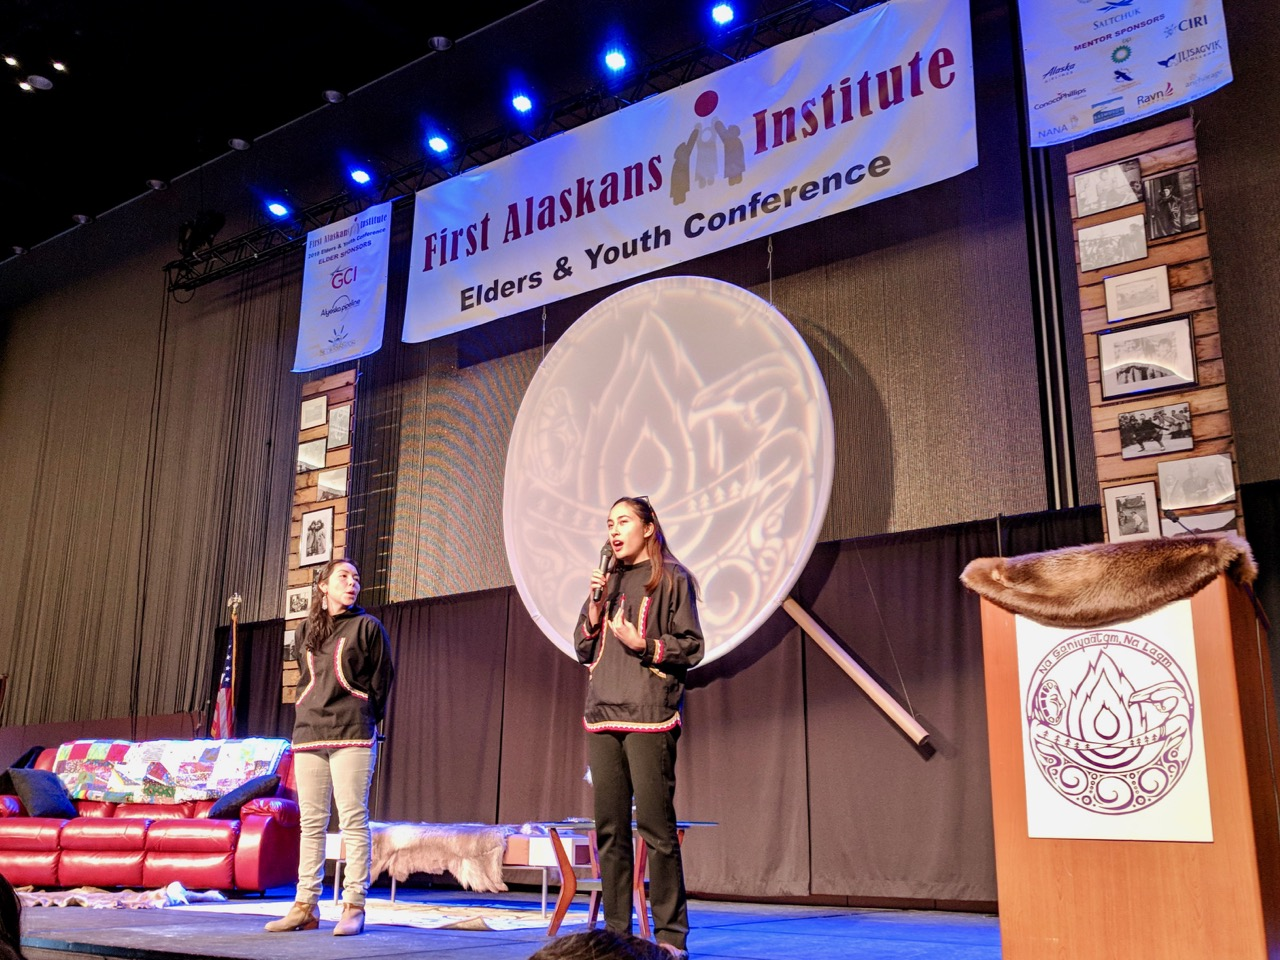 Native elders and youth gather for annual conference in Alaska